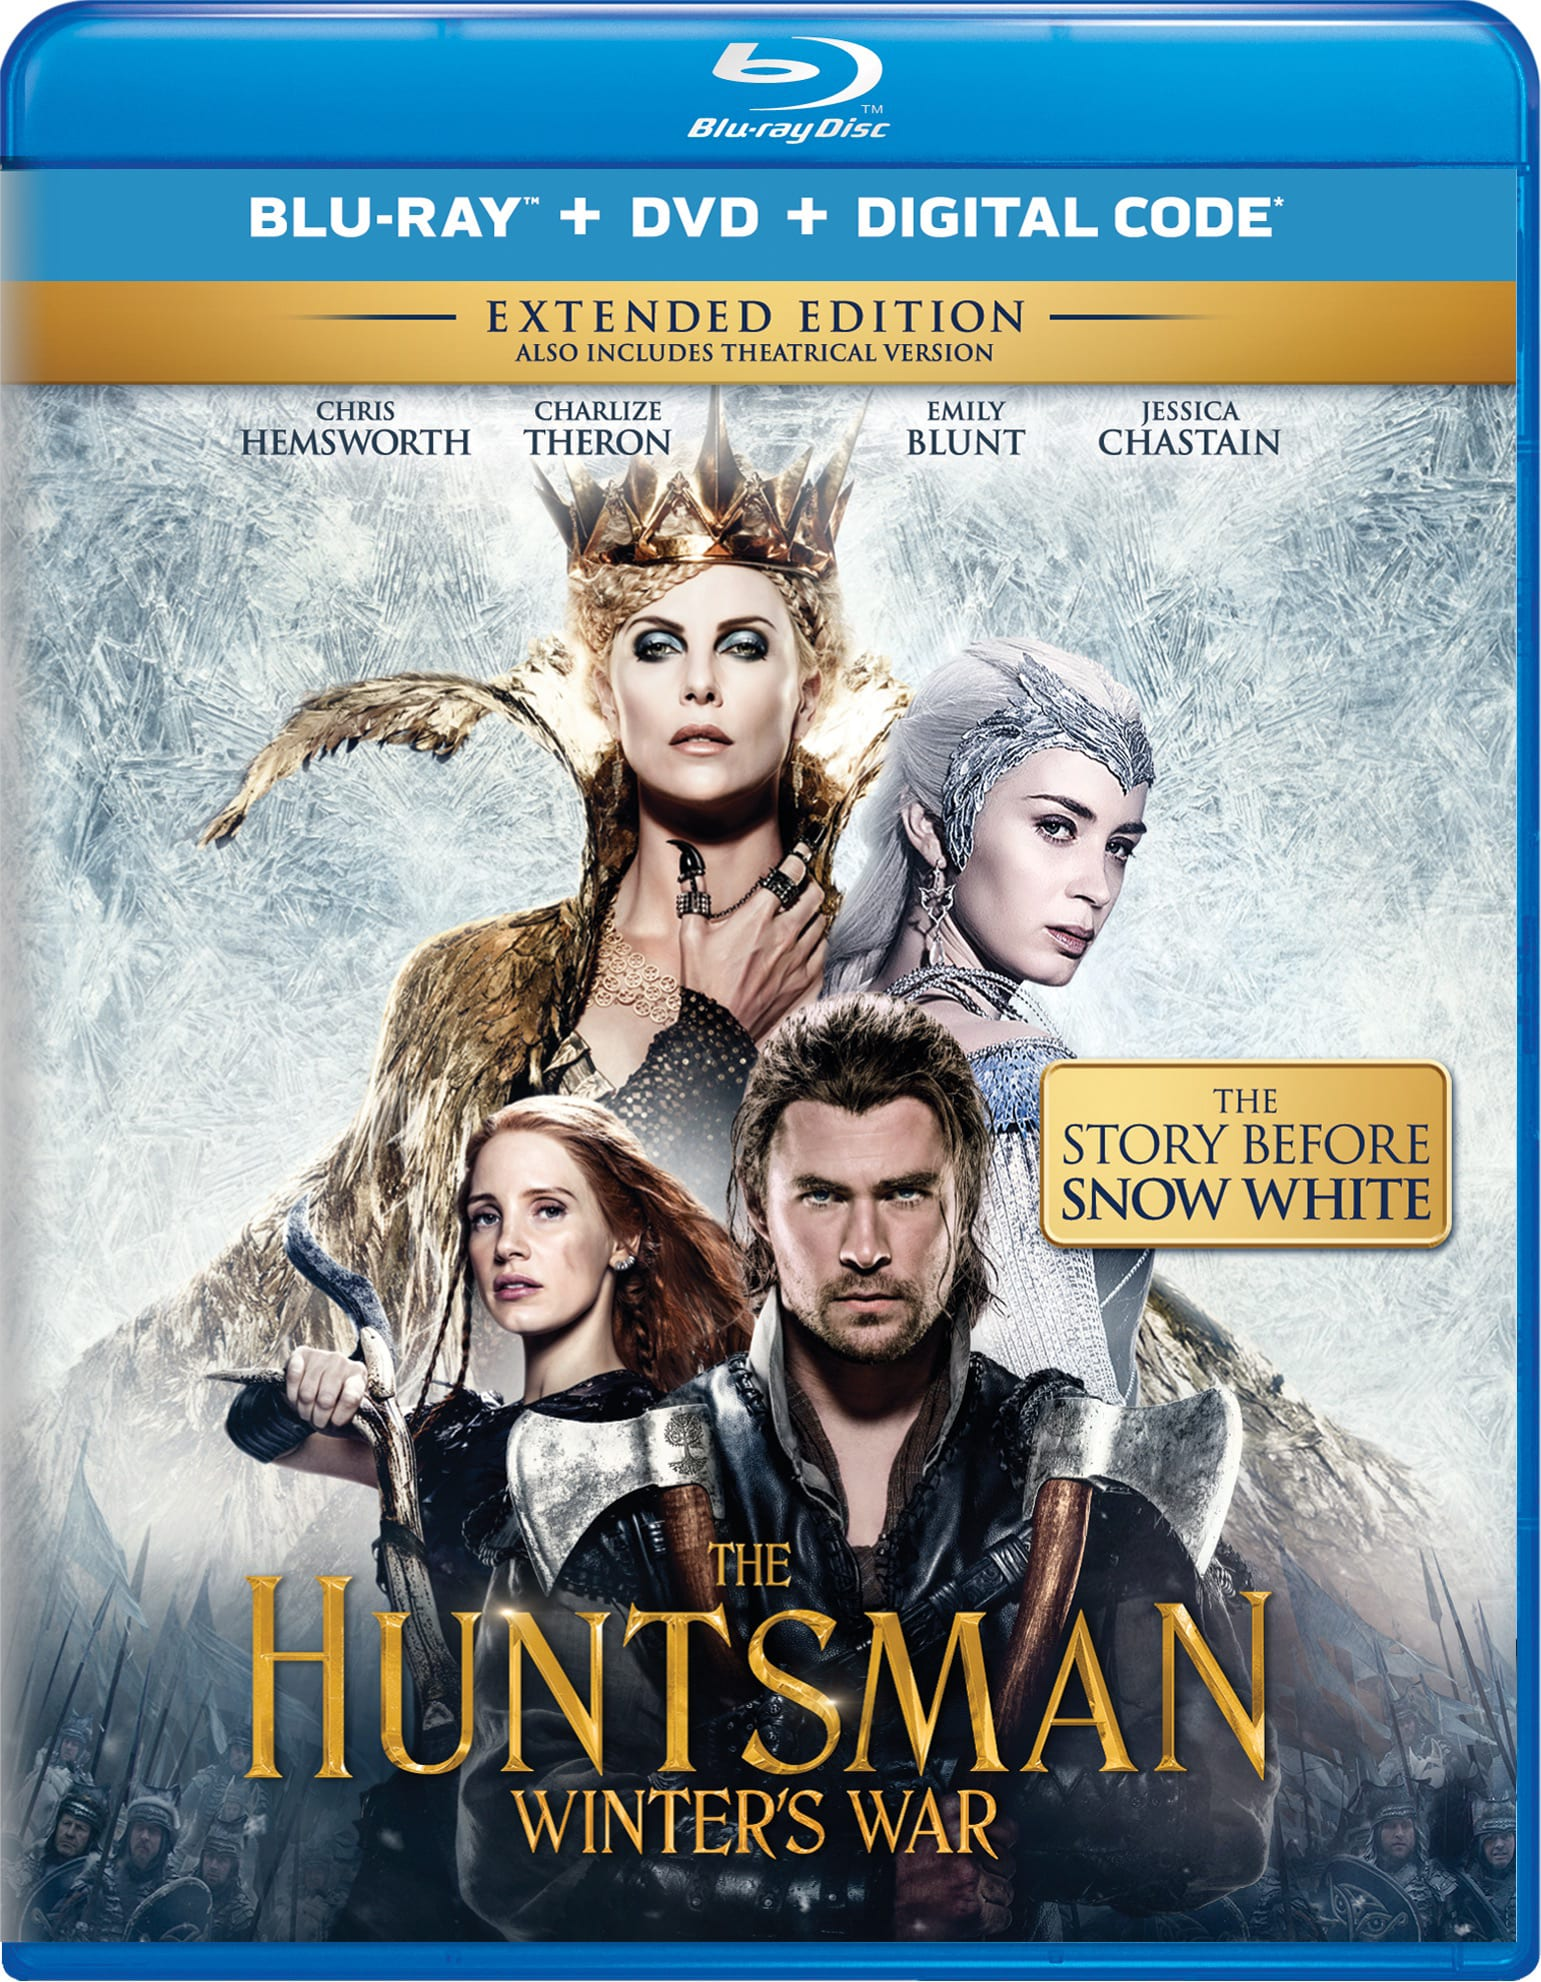 The Huntsman: Winter's War (Extended Edition DVD + Digital) [Blu-ray]